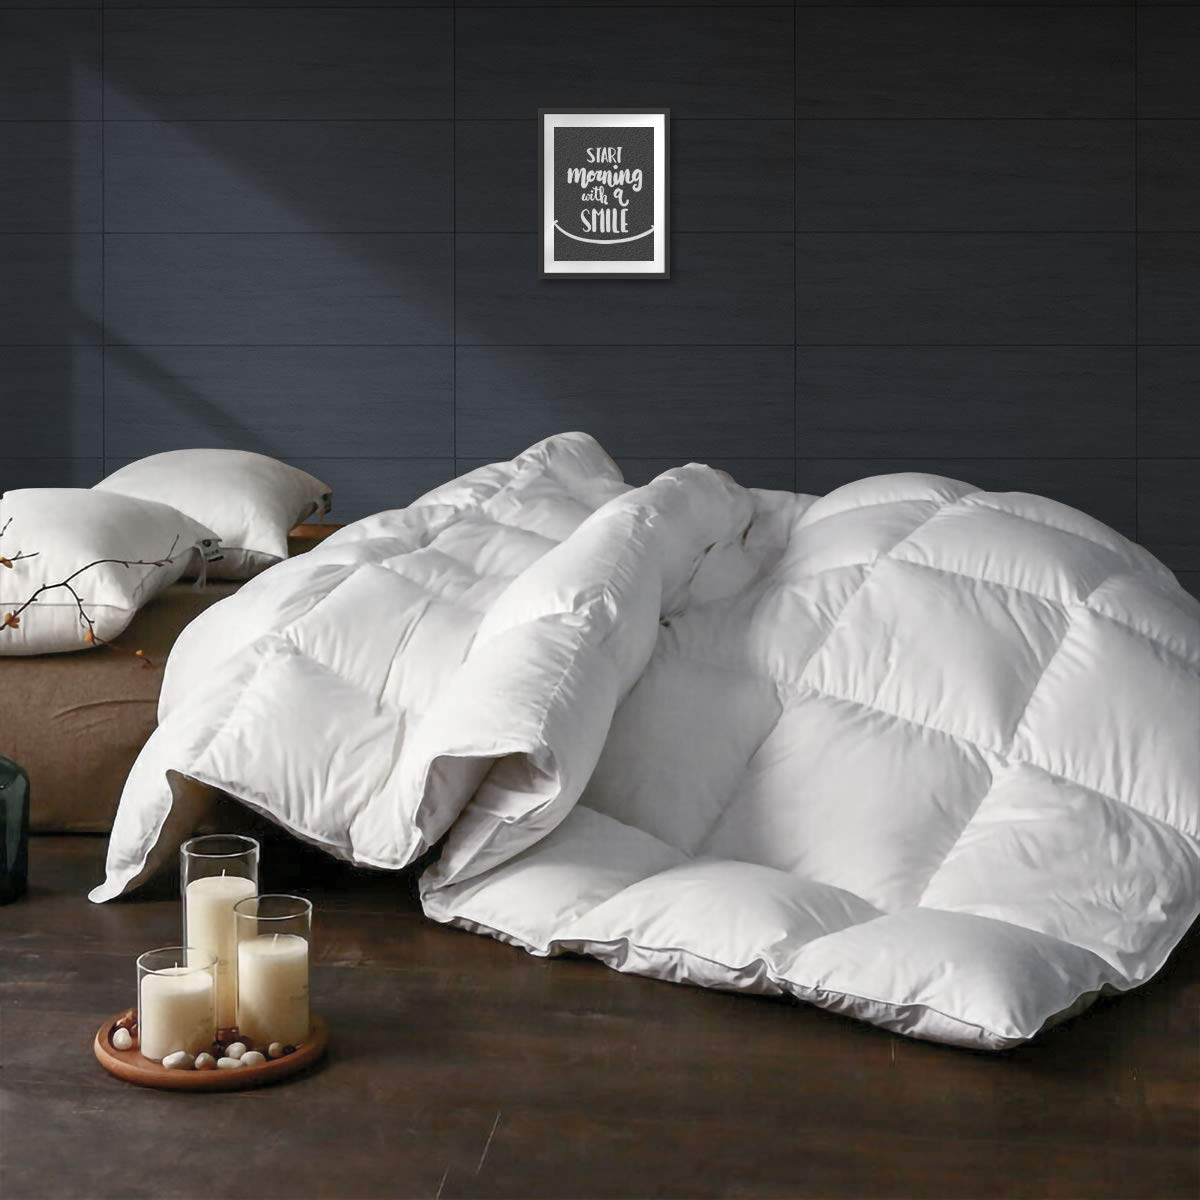 APSMILE All Seasons Goose Down Comforter King Size - Ultra-Soft Egyptian Cotton